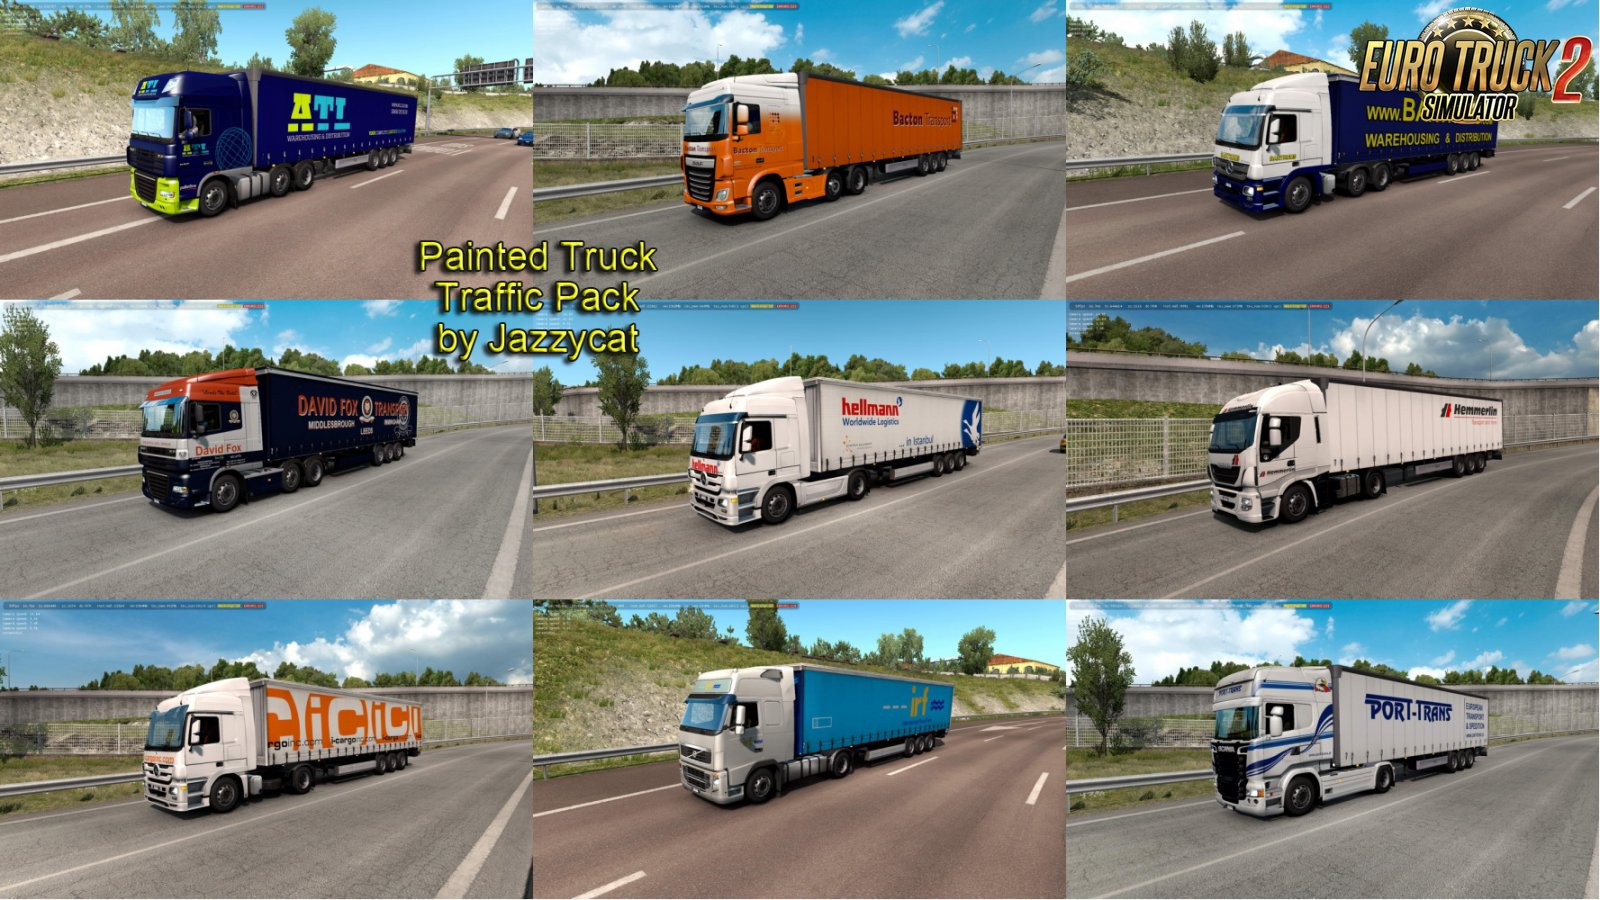 Painted Truck Traffic Pack v7.1 by Jazzycat